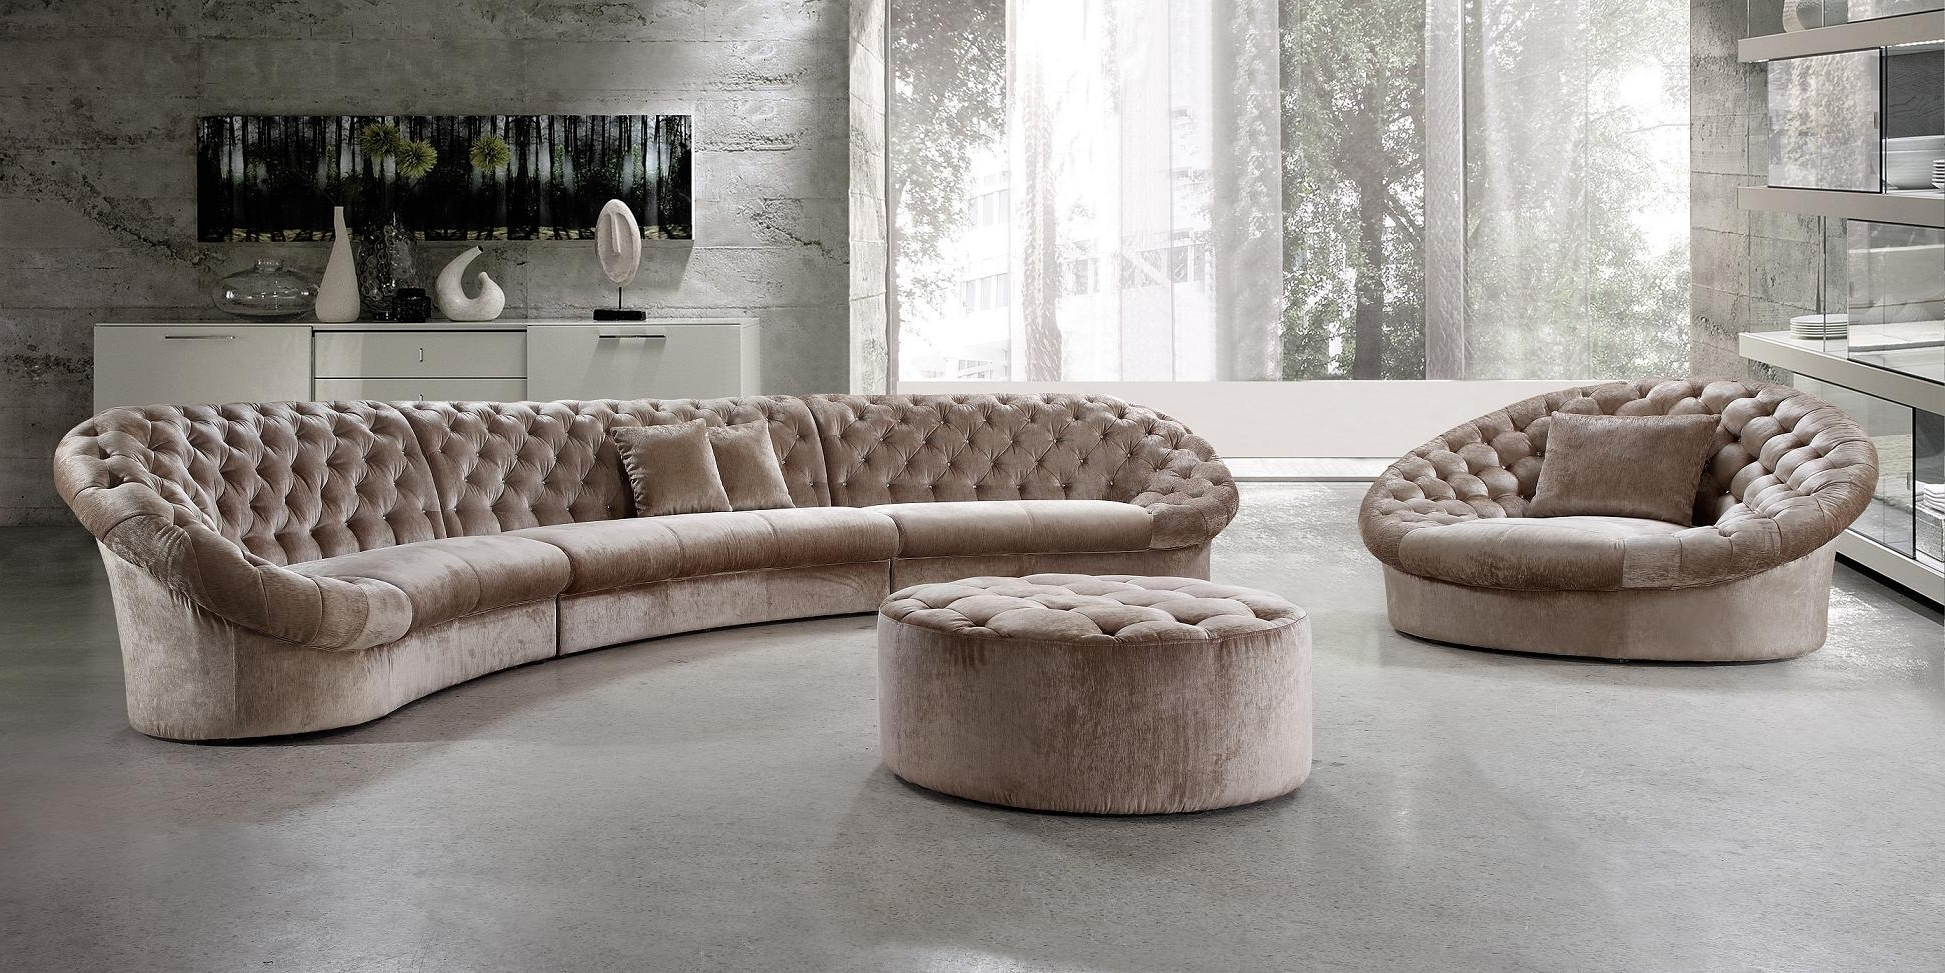 Moc Modern Within Well Liked Rounded Corner Sectional Sofas (View 10 of 20)